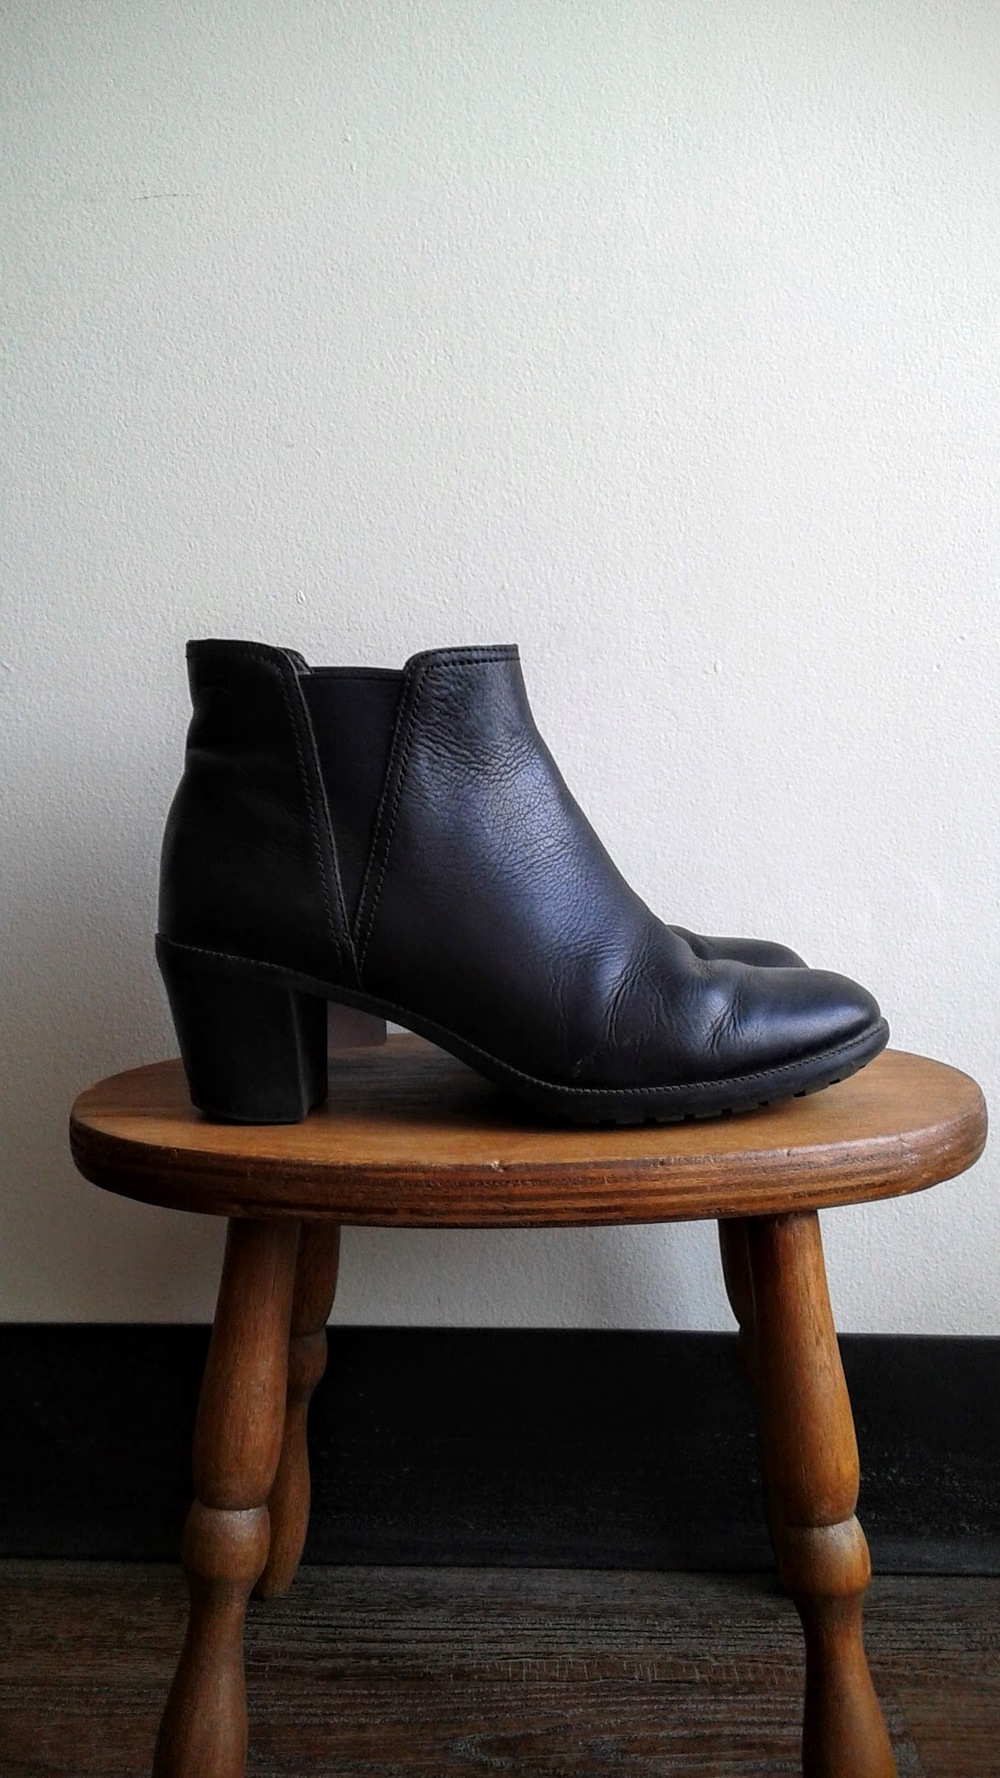 Camper boots; S8, $65